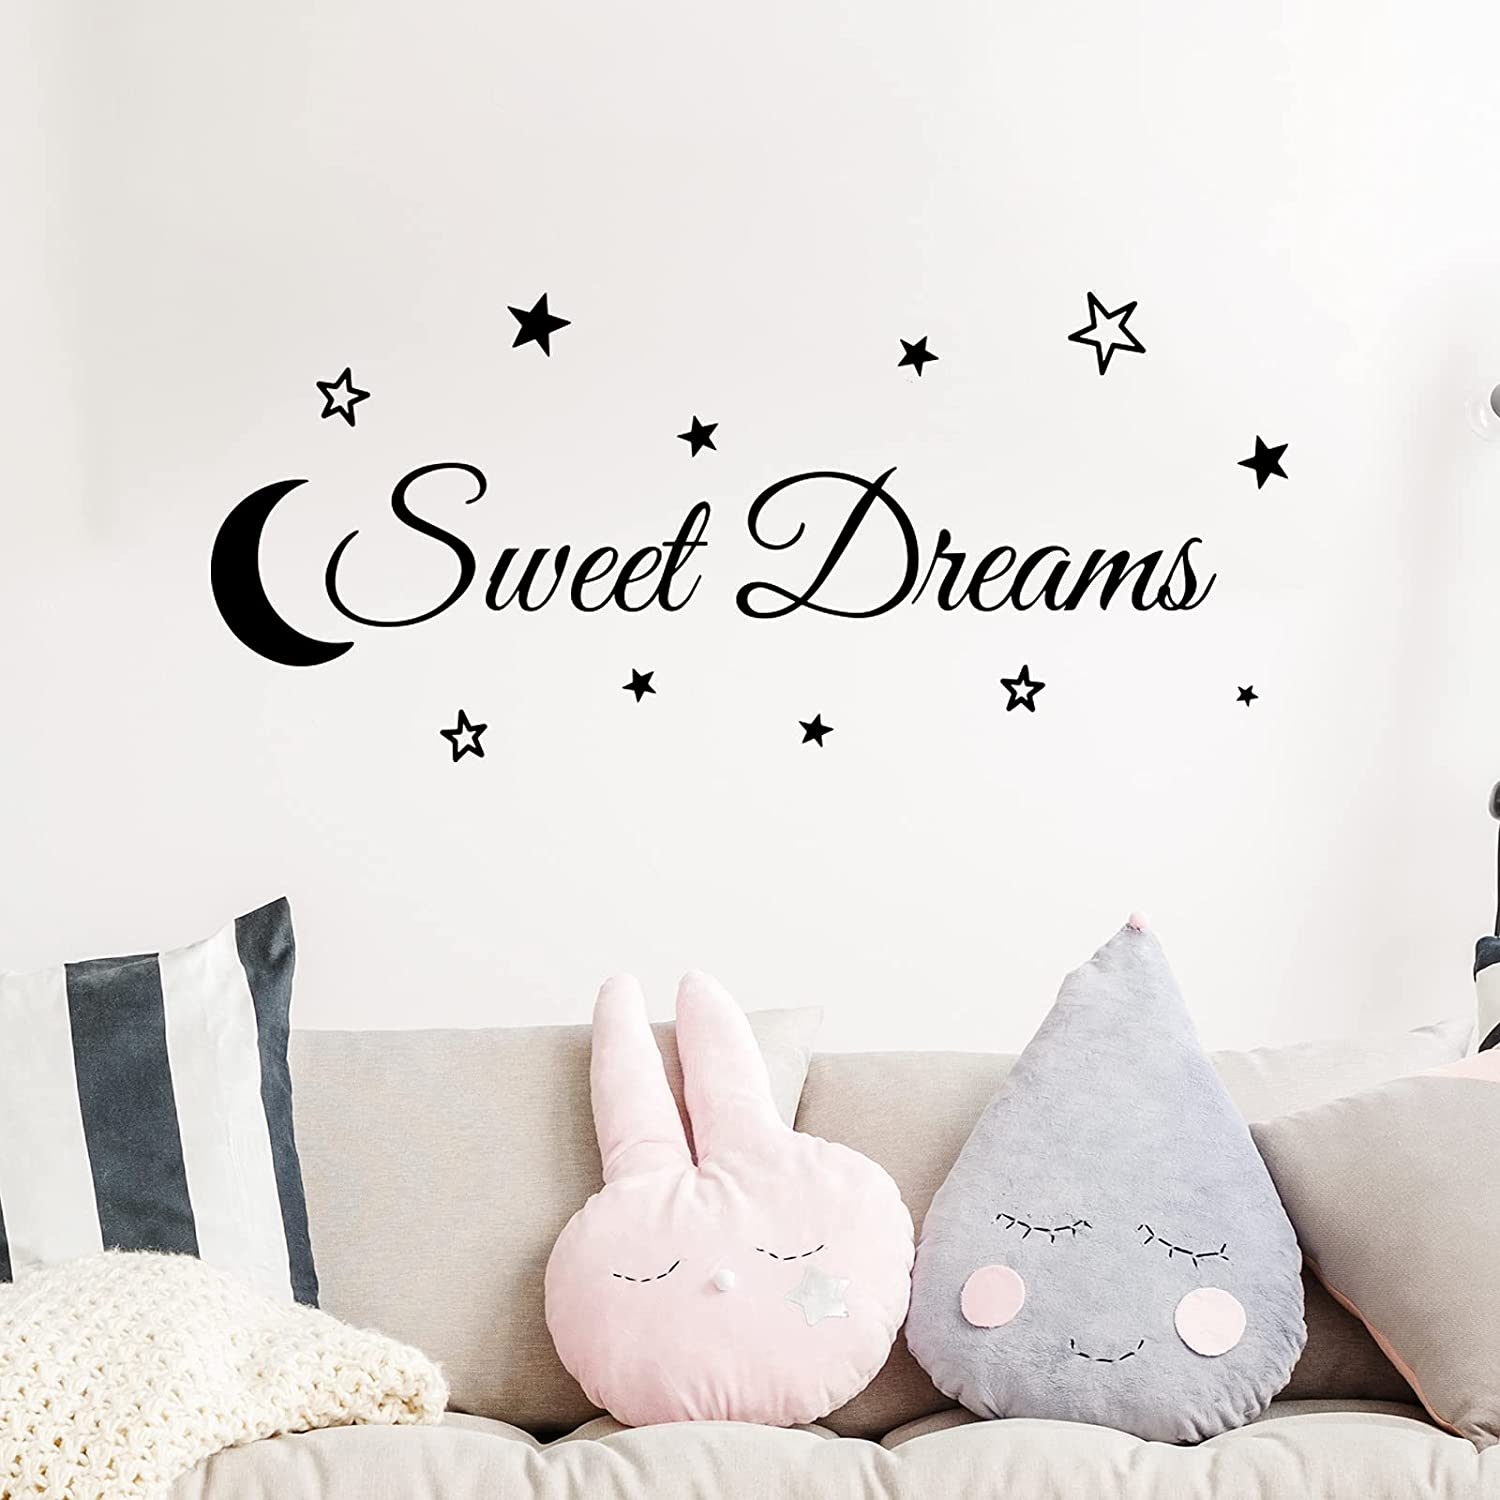 Xijuer Wall Decor Stickers, Sweet Dreams Wall Decal, Wall Art Decor DIY Vinyl Wall Stickers for Bedroom, Living Room, Home